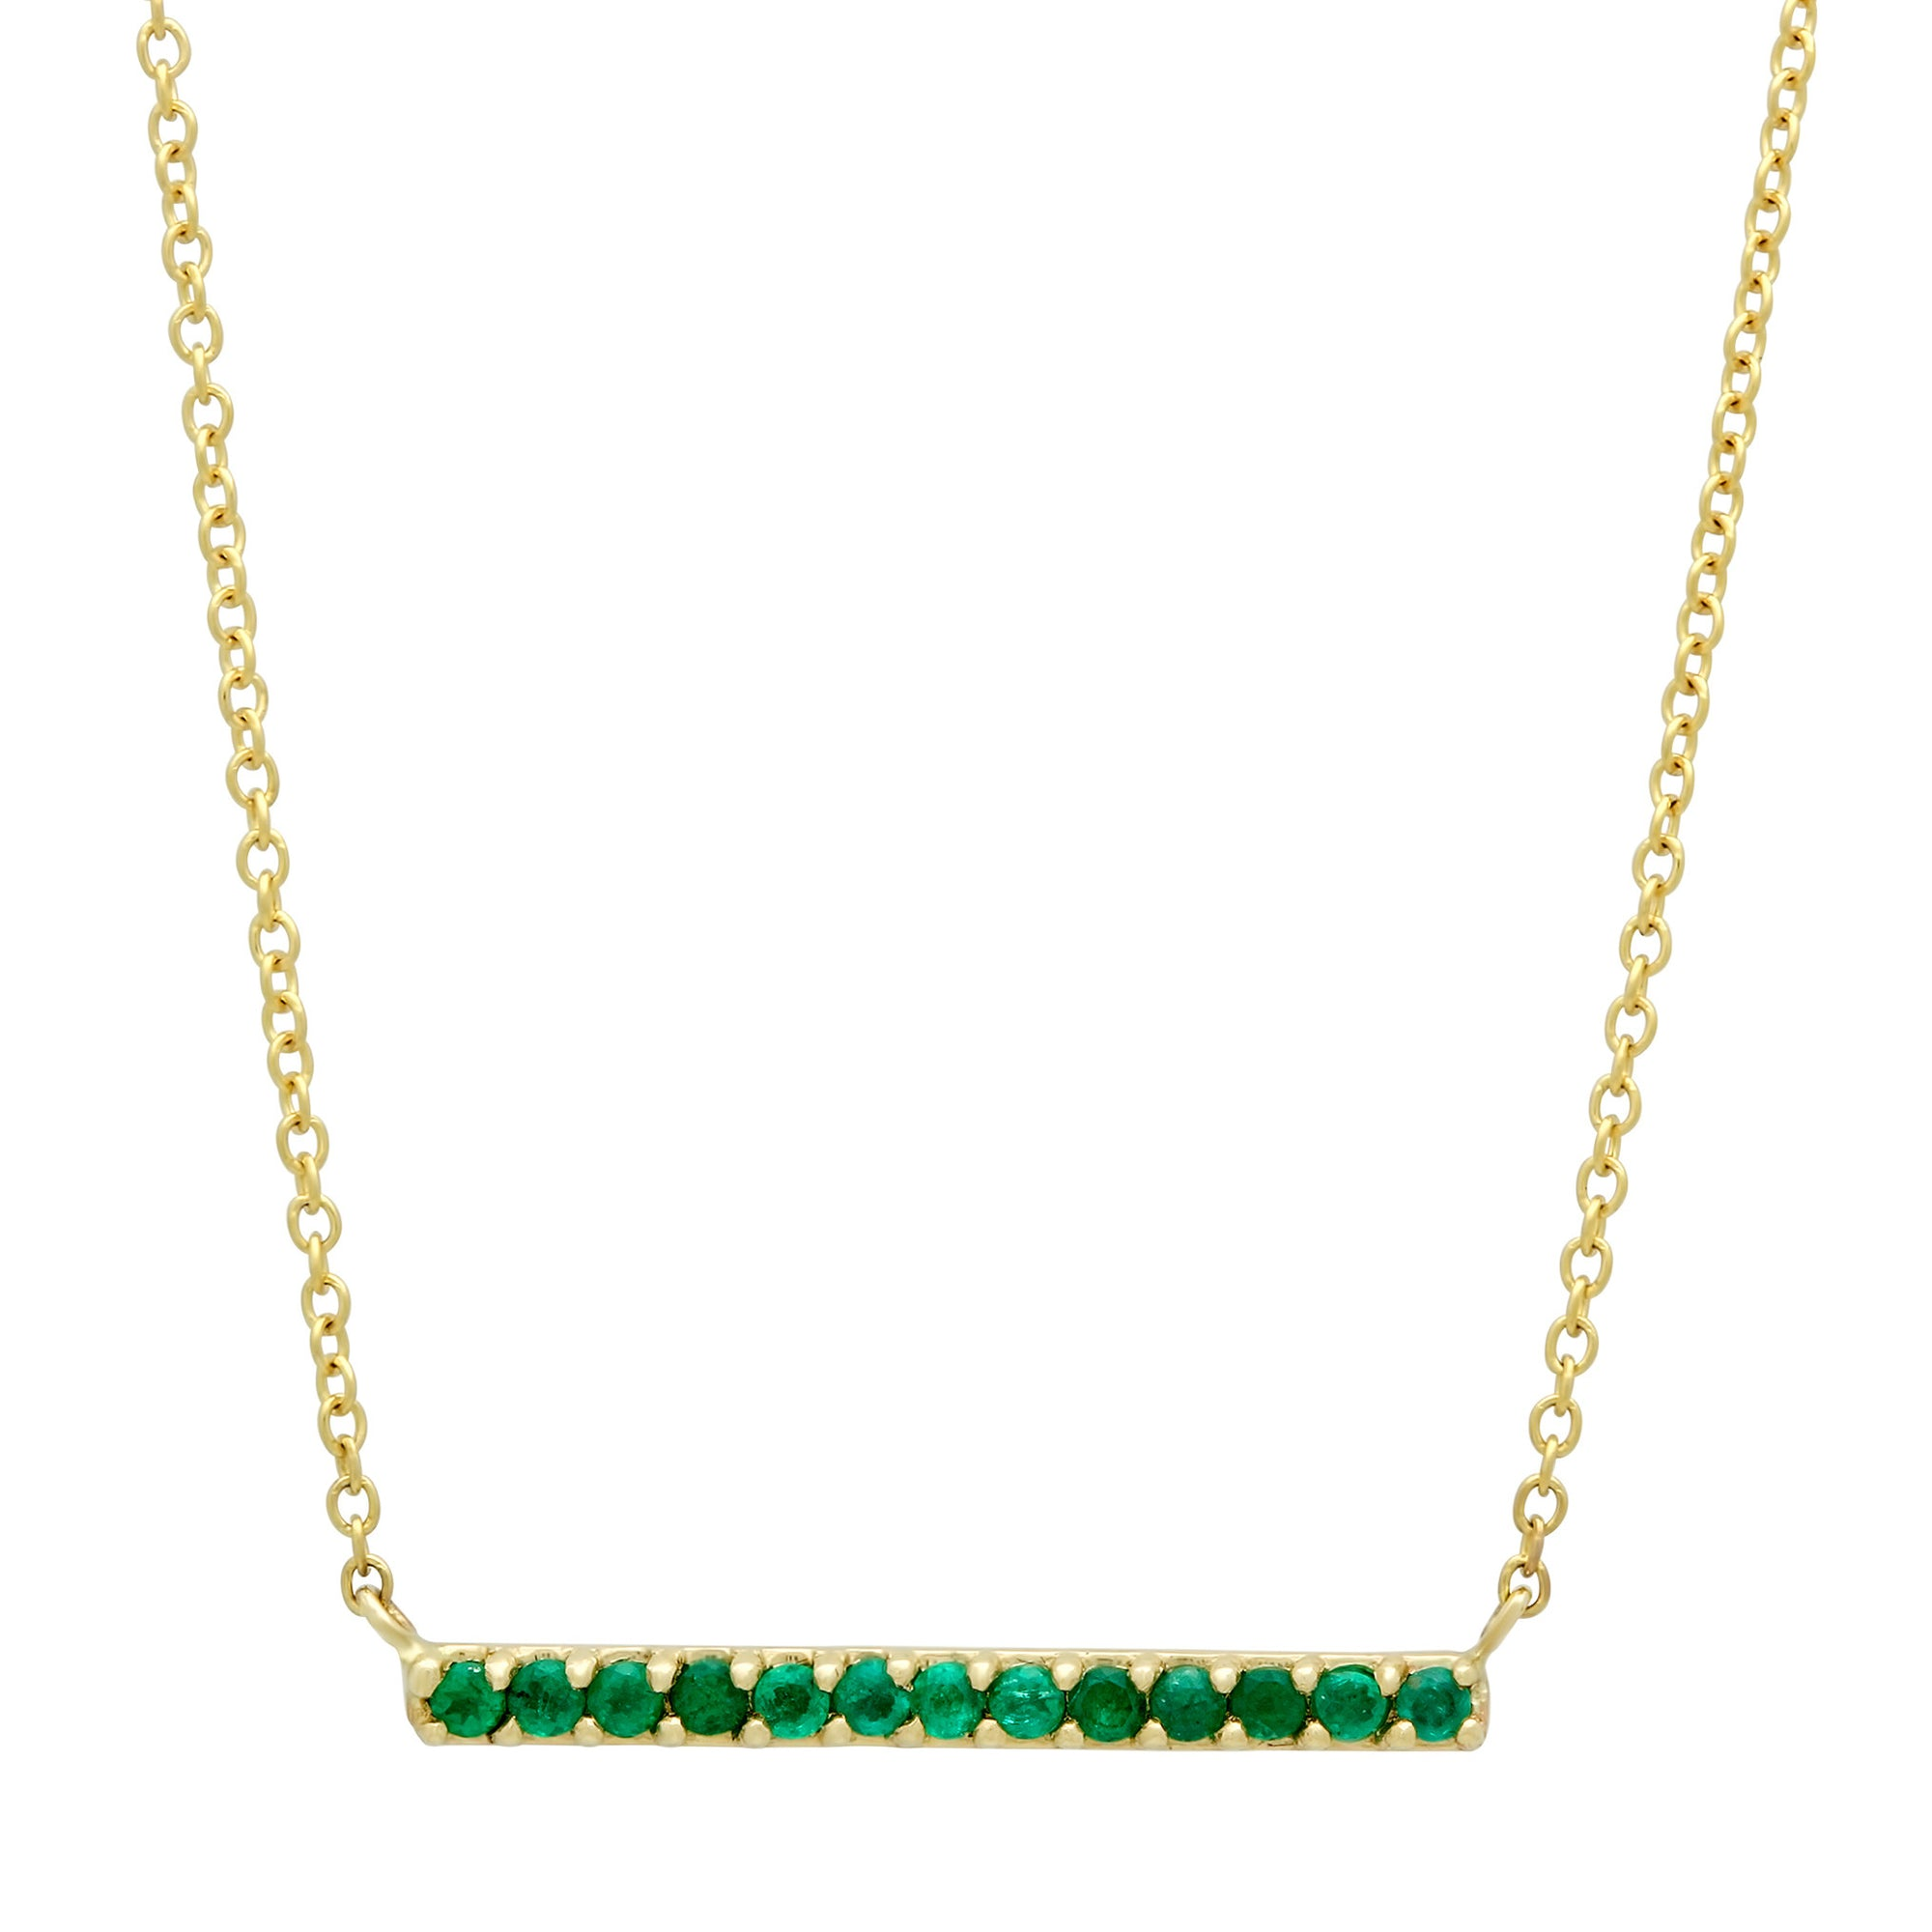 irn smithsonian width height mackay institution necklace emerald action